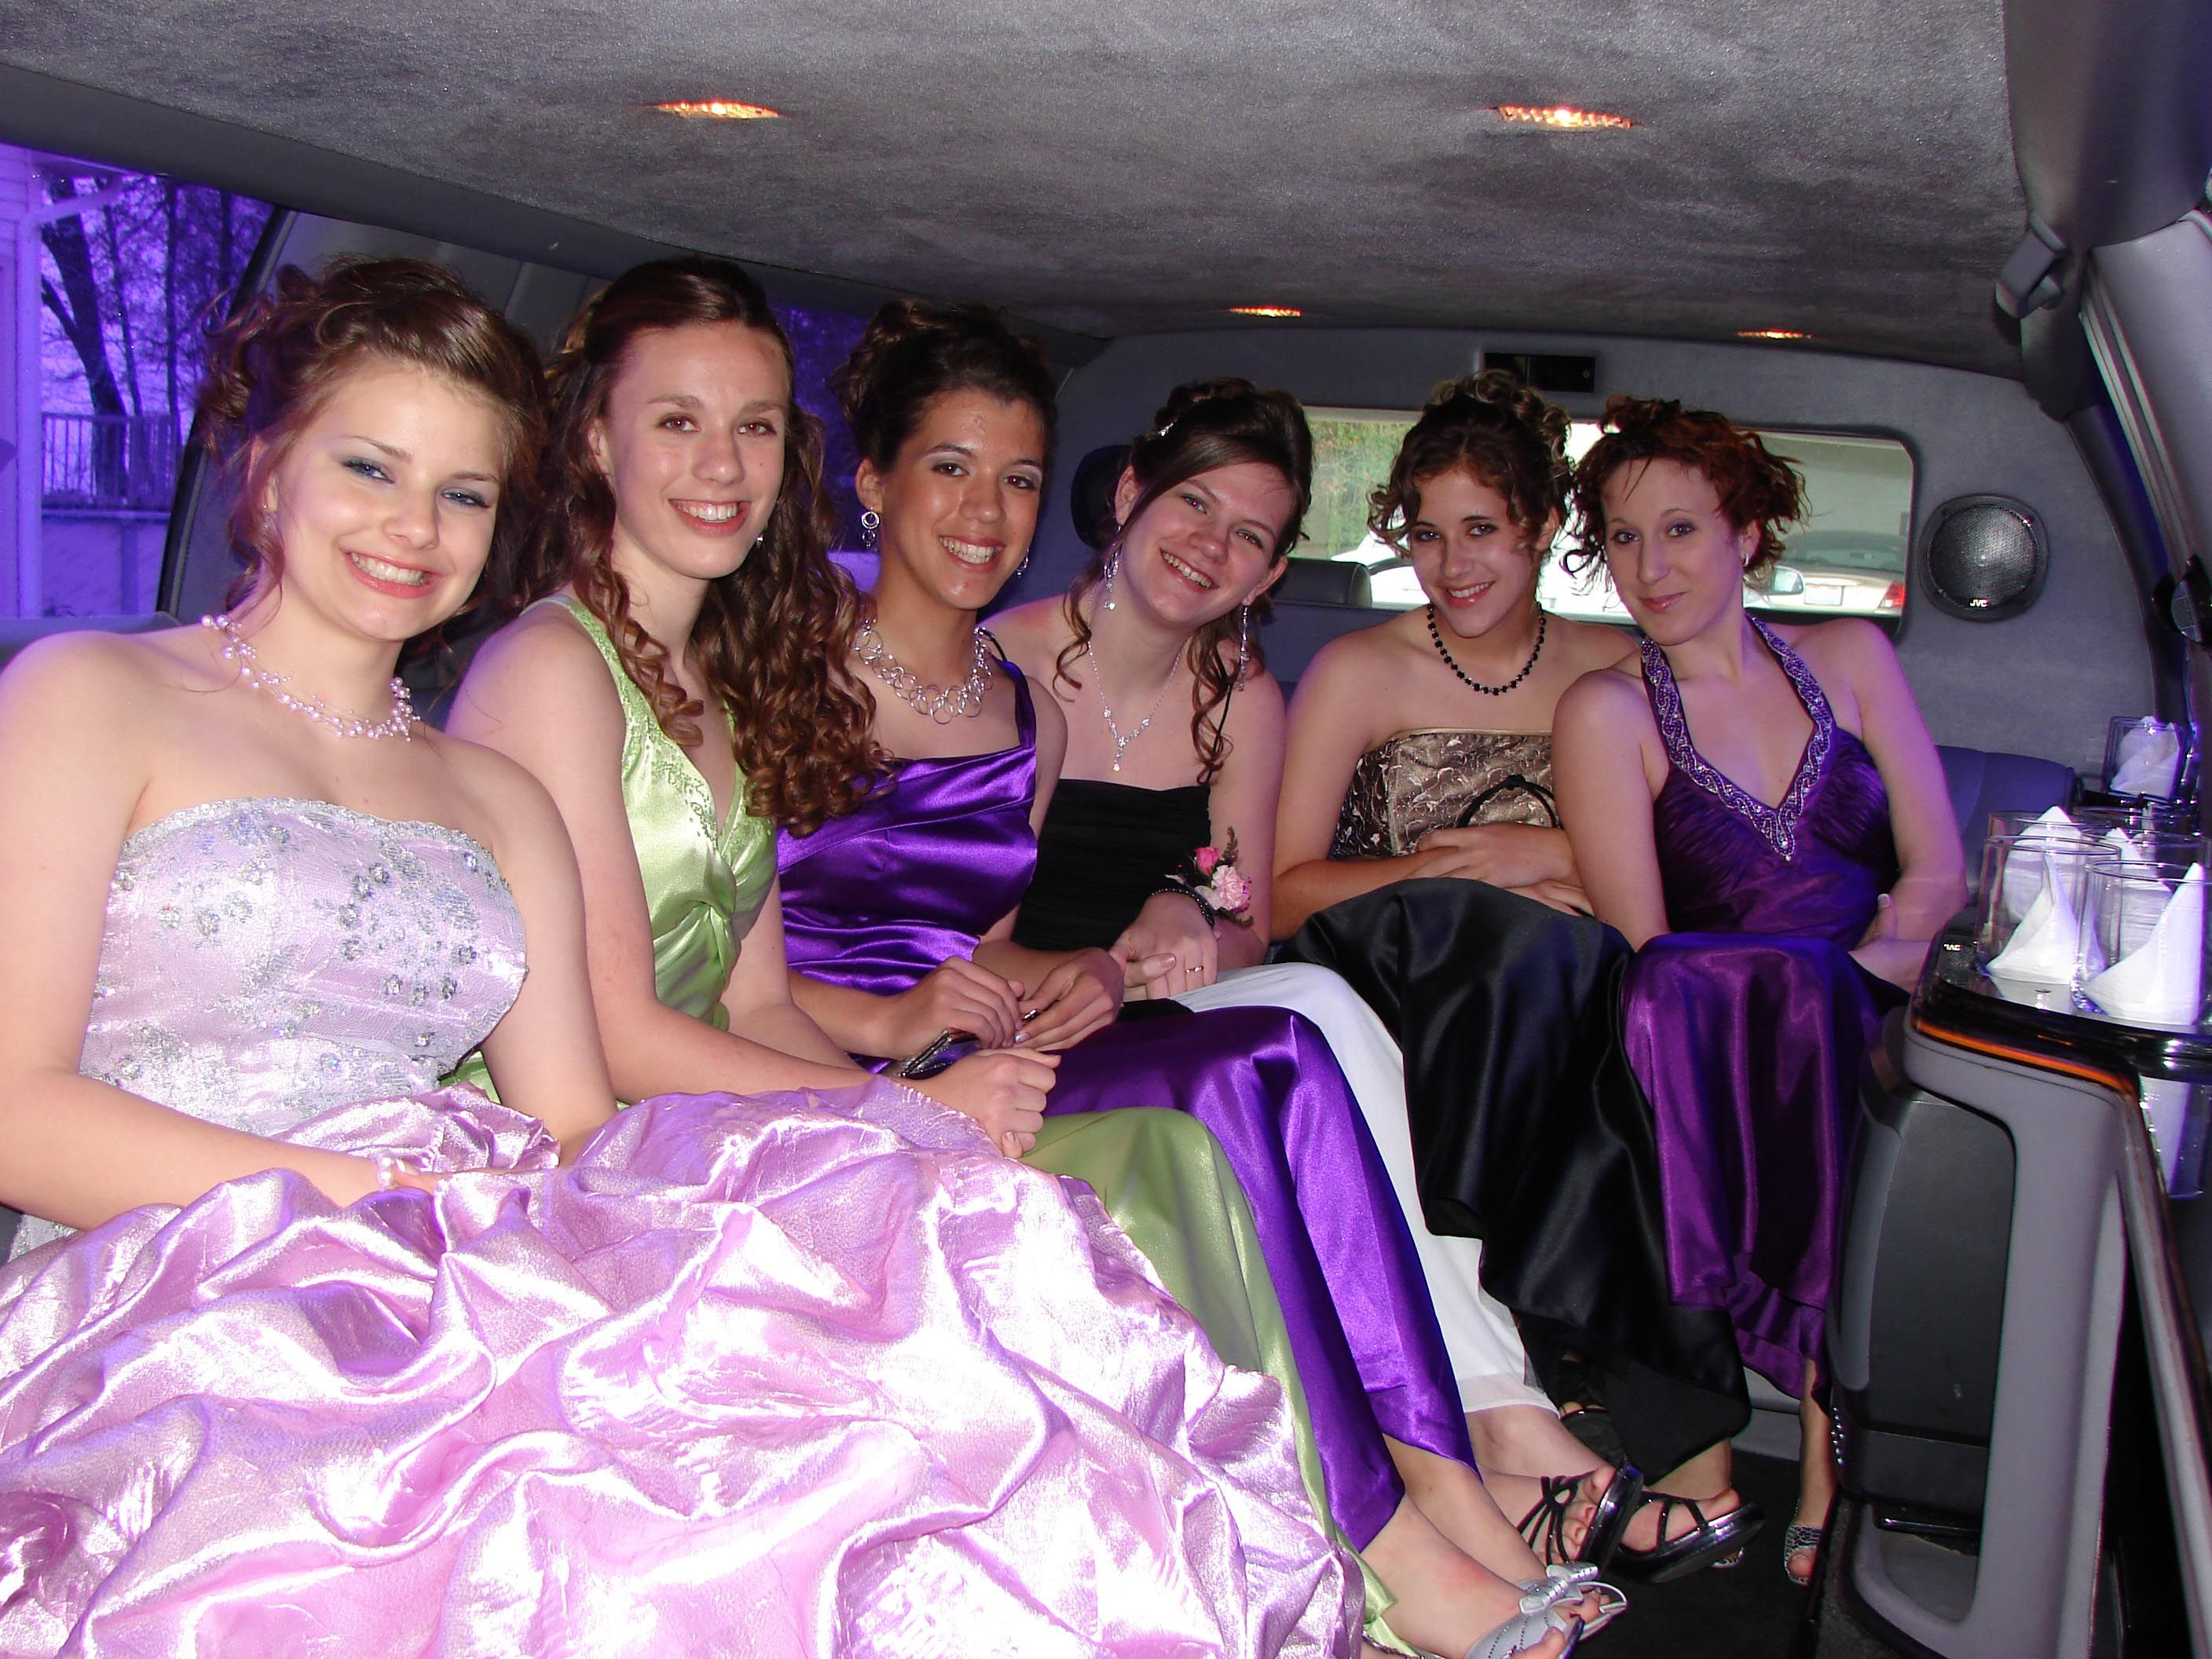 Limo Prom Tcl S Limousines Can Seat Up To 16 Student For Your Prom Event